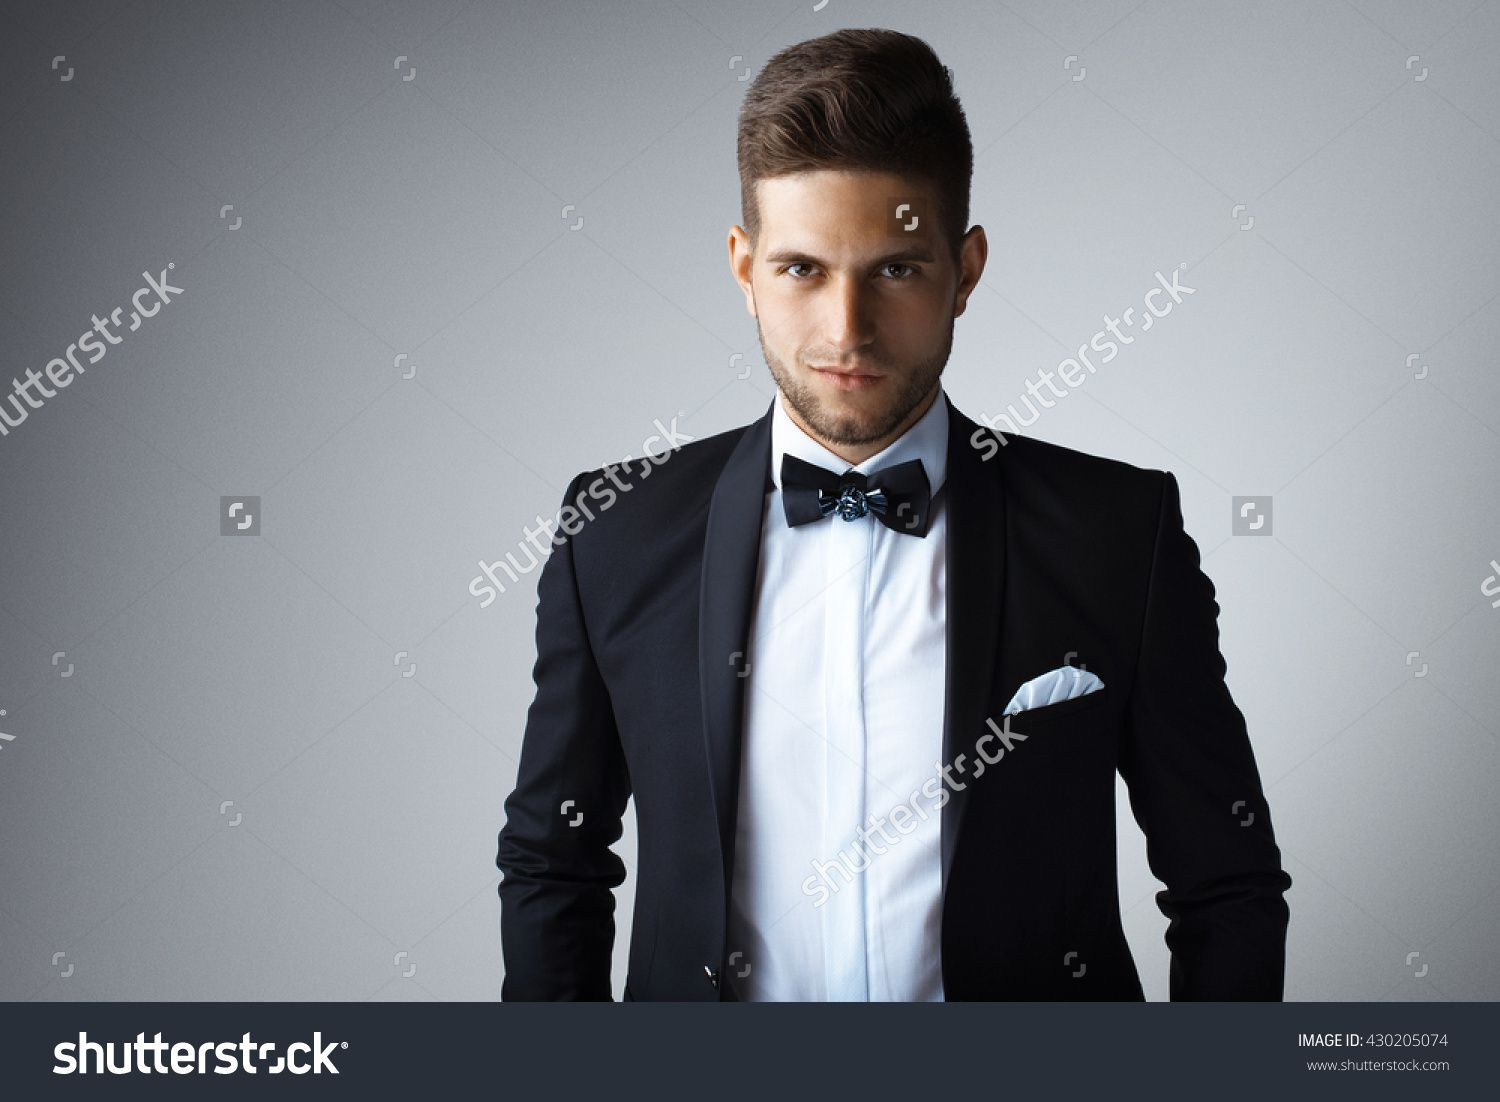 Stylish Young Man In Suit And Tie. Business Style. Fashionable ...